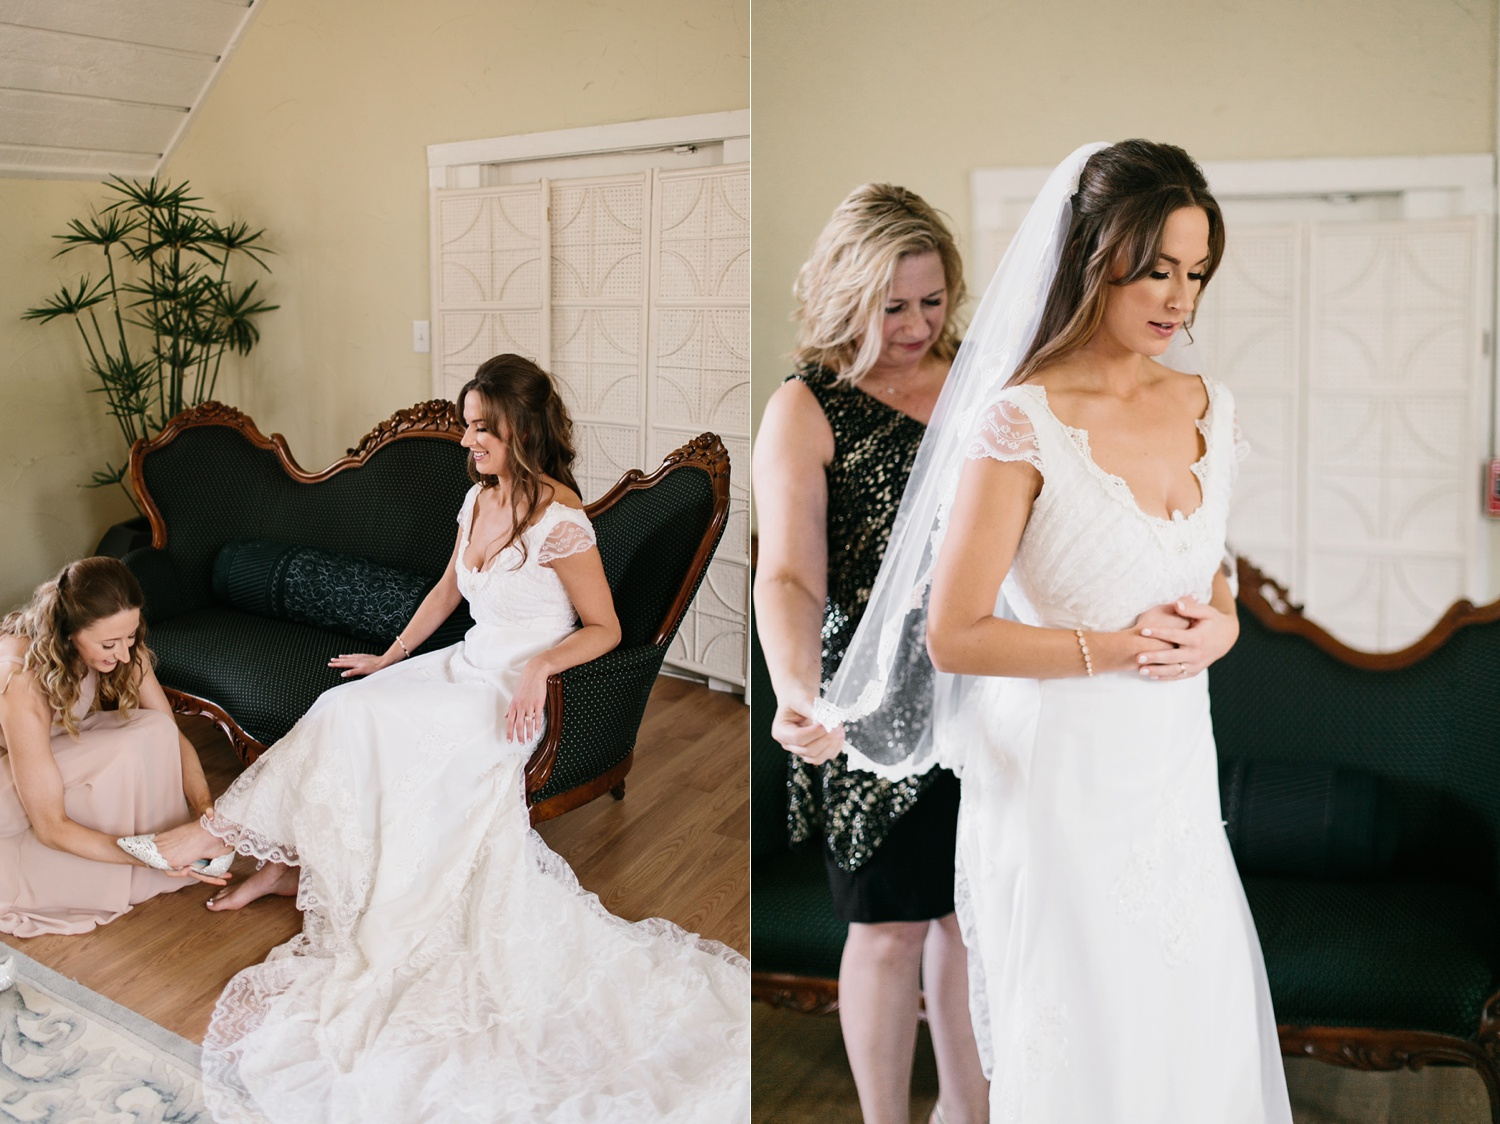 Amber + Daniel an intimate, simple, spring ceremony at Heard Craig Center and reception at Gather in McKinney, Texas by North Texas Wedding Photographer Rachel Meagan Photography 021